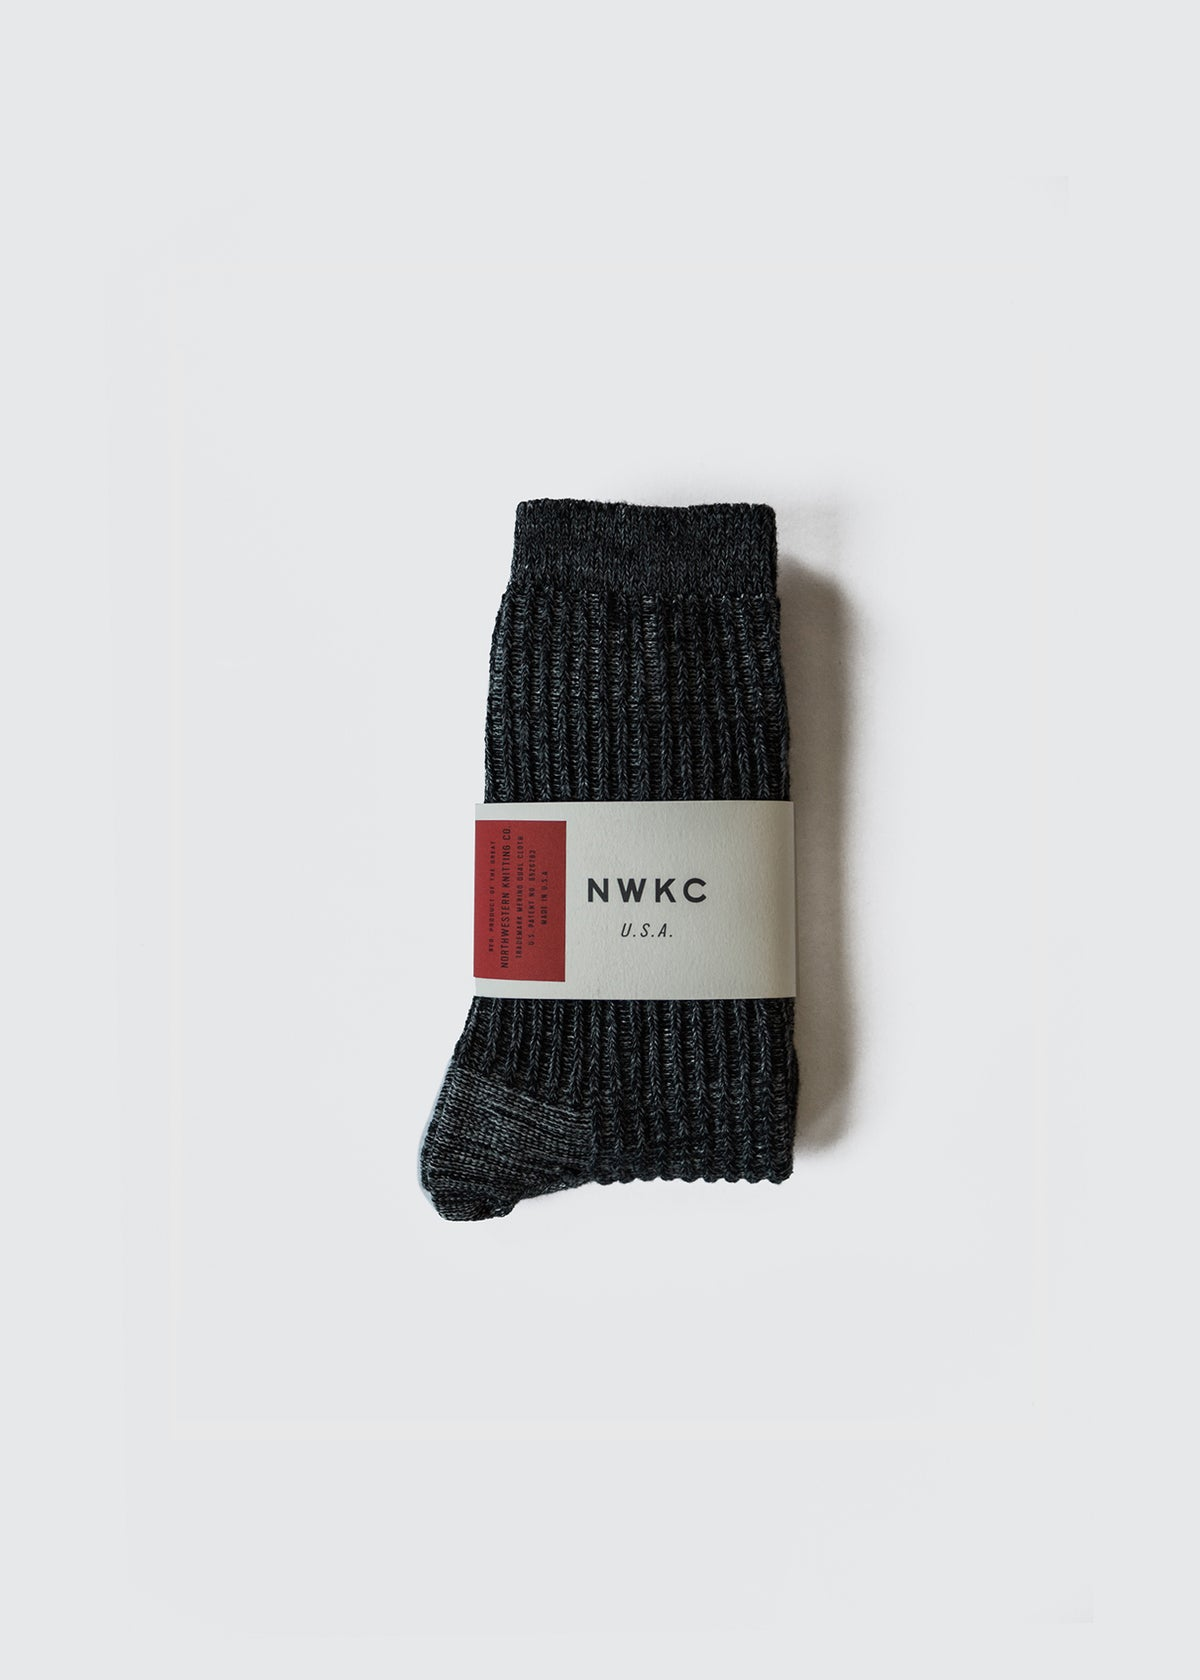 A01 - SOCK - CHARCOAL - Wilson & Willy's - MPLS Neighbor Goods